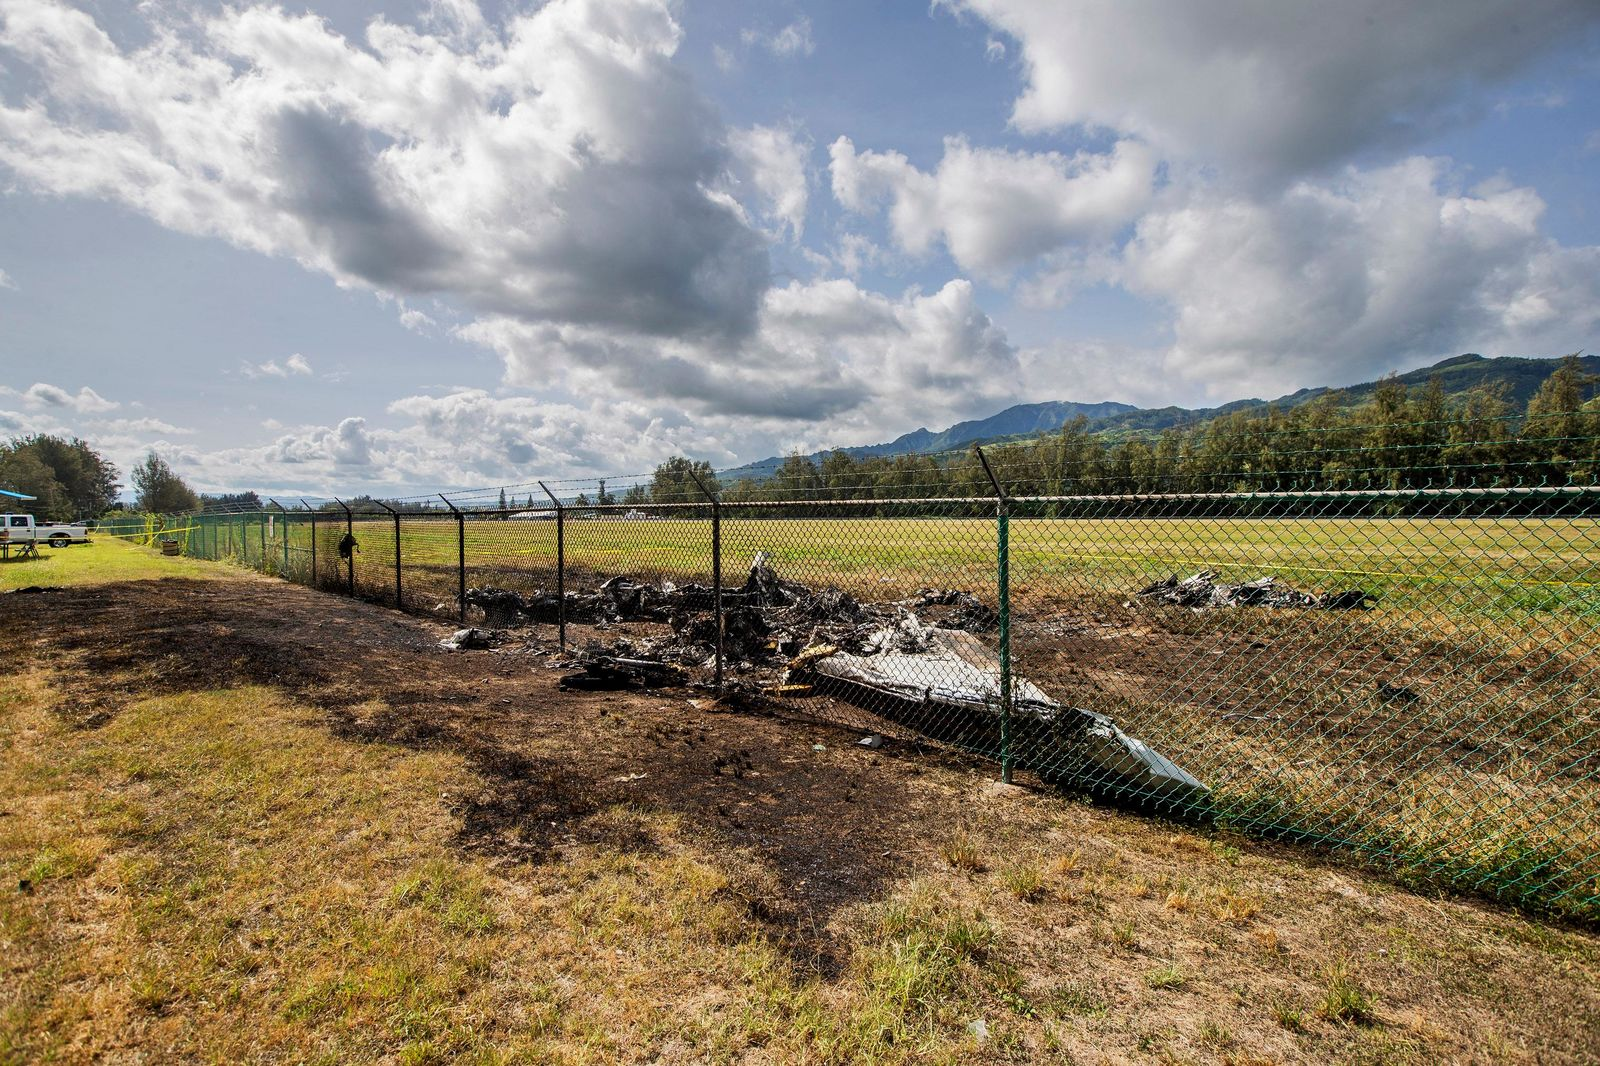 This is the site where a Beechcraft King Air twin-engine plane crashed Friday evening killing multiple people seen on Saturday, June 22, 2019, in Mokuleia, Hawaii. No one aboard survived the skydiving plane crash, which left a small pile of smoky wreckage near the chain link fence surrounding Dillingham Airfield, a one-runway seaside airfield. (Dennis Oda/Honolulu Star-Advertiser via AP)